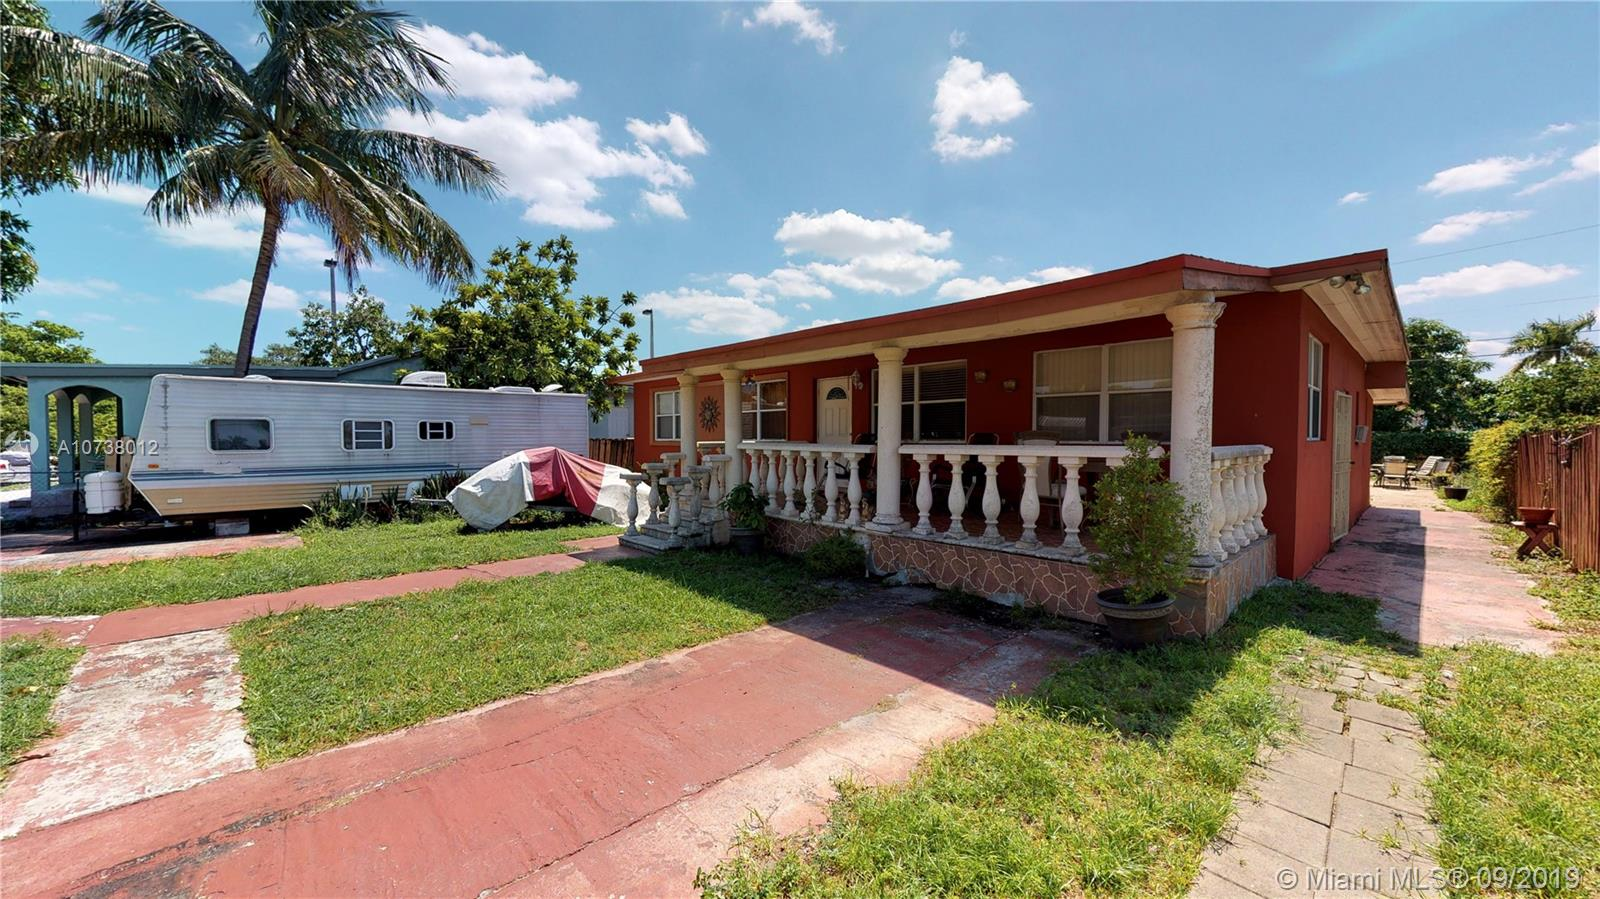 1xxx NW 116th St, Miami Shores, Florida